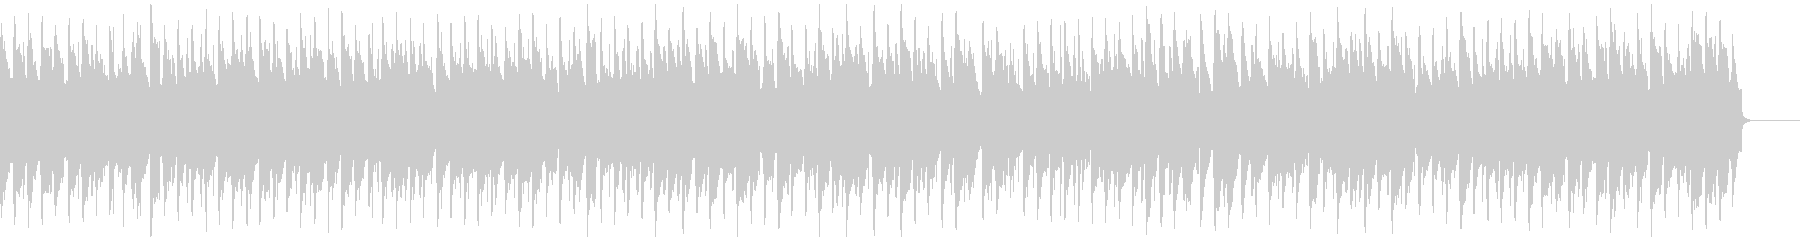 Handel rhythm and melody without a standard of award ceremony's unreproduced waveform